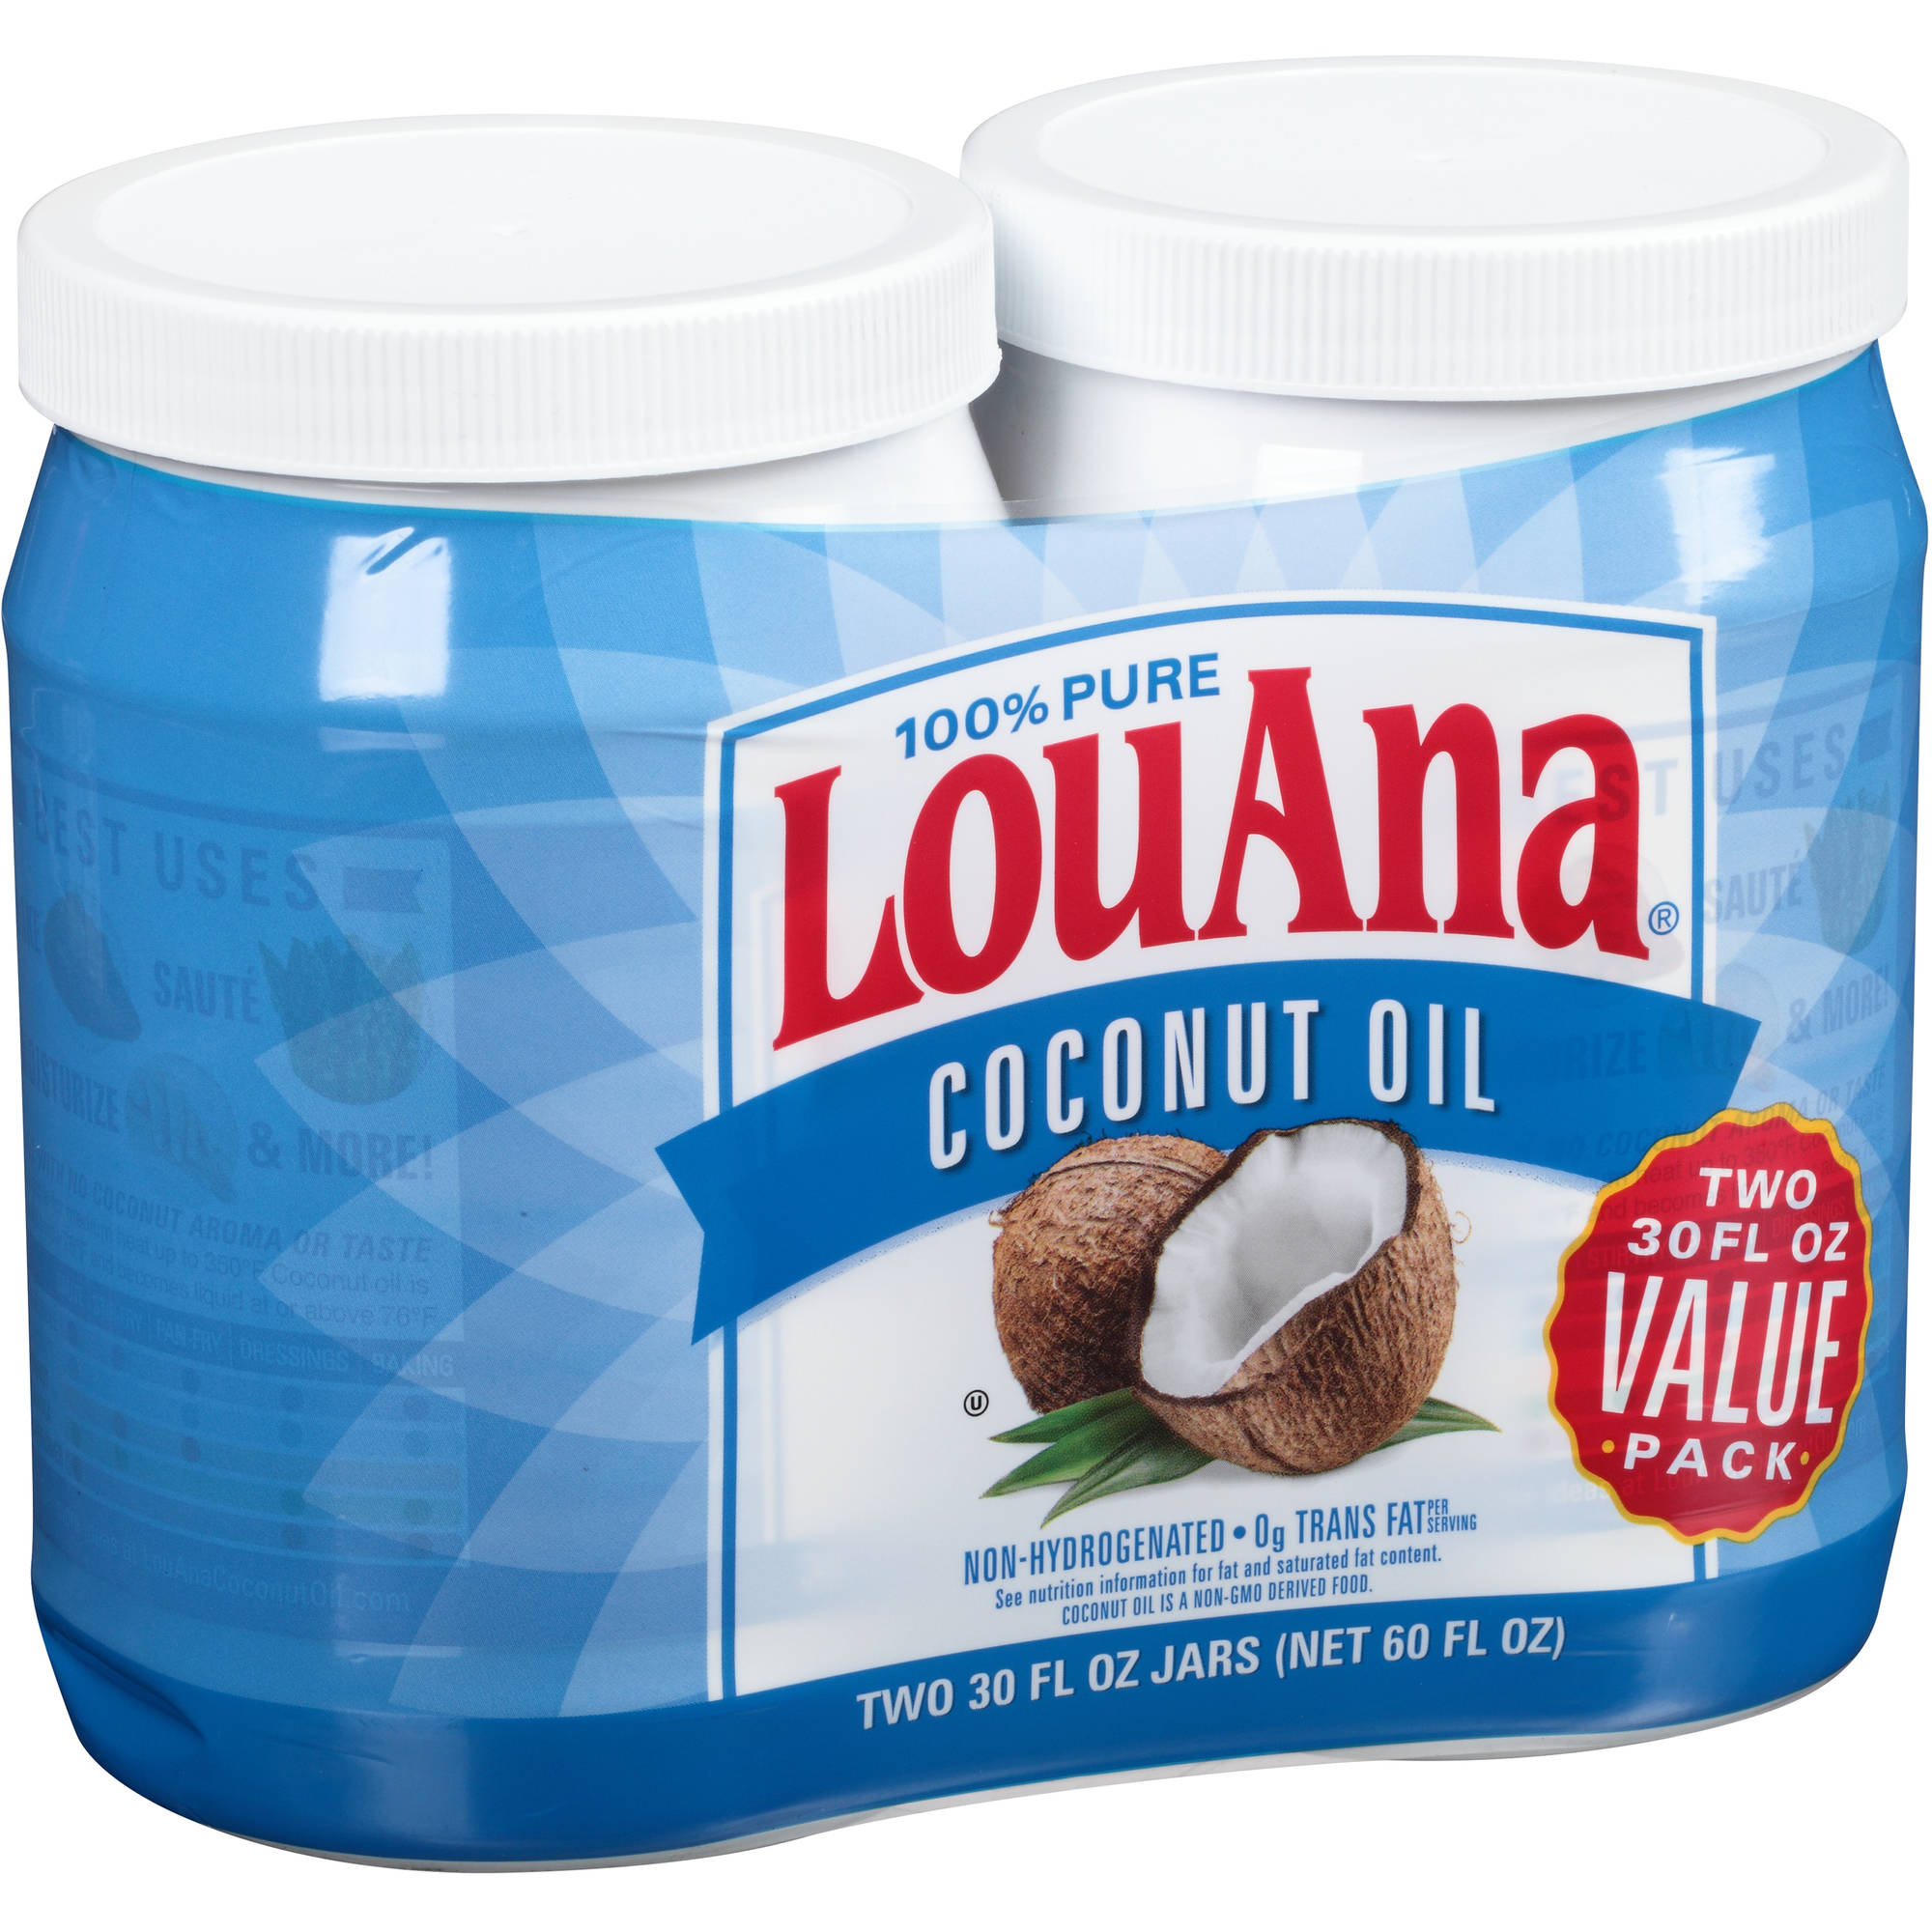 LouAna 100% Pure Coconut Oil